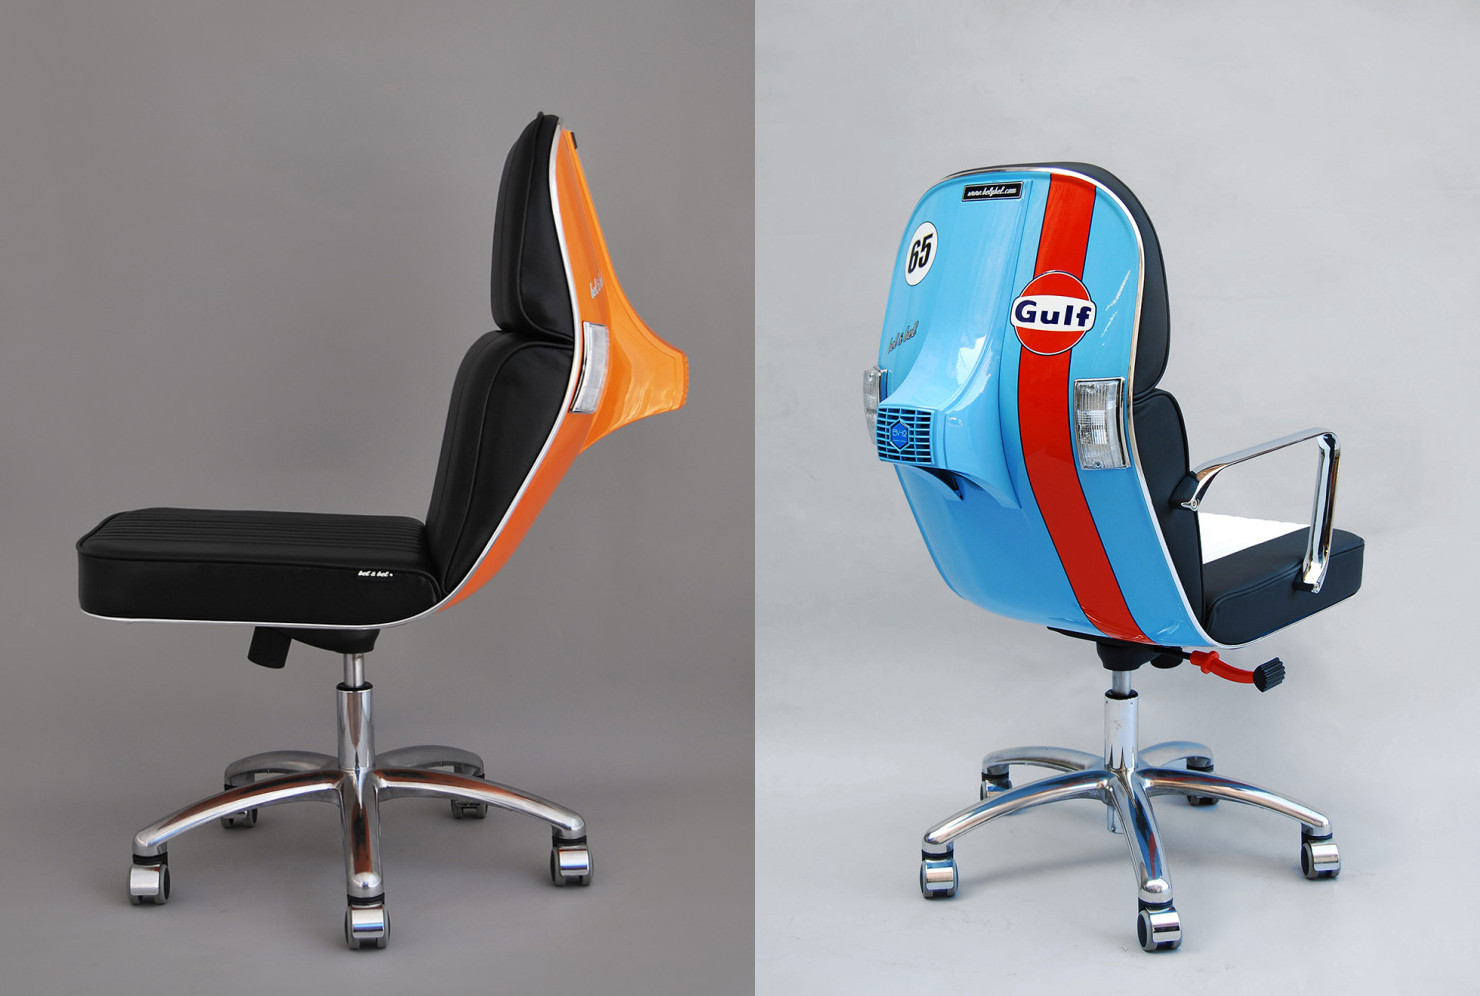 Office Chairs Made Out Of Old Vespa Scooters / Boing Boing